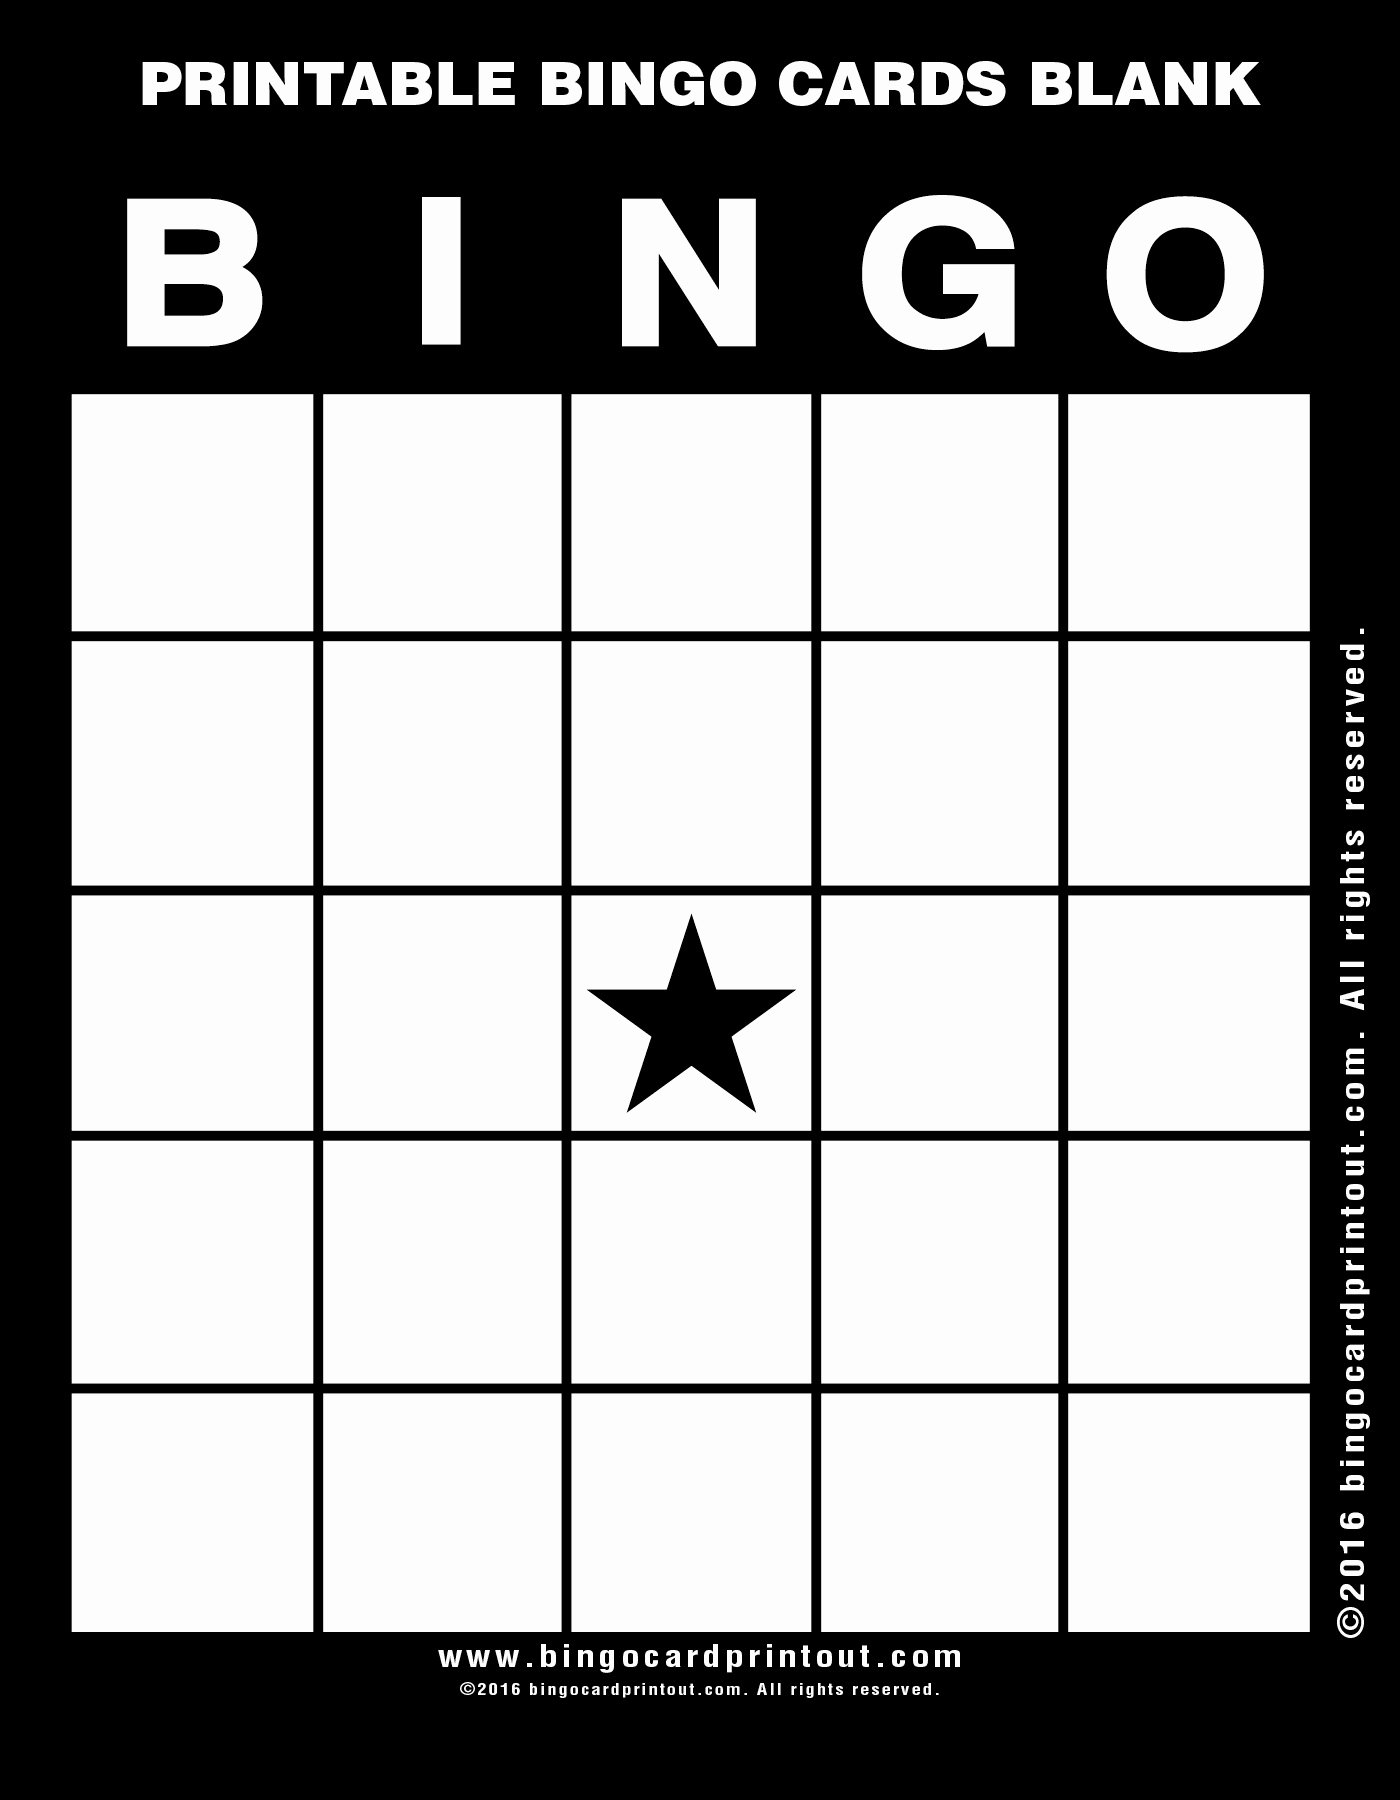 Blank Printable Bingo Cards Fresh Printable Bingo Cards Blank Bingocardprintout